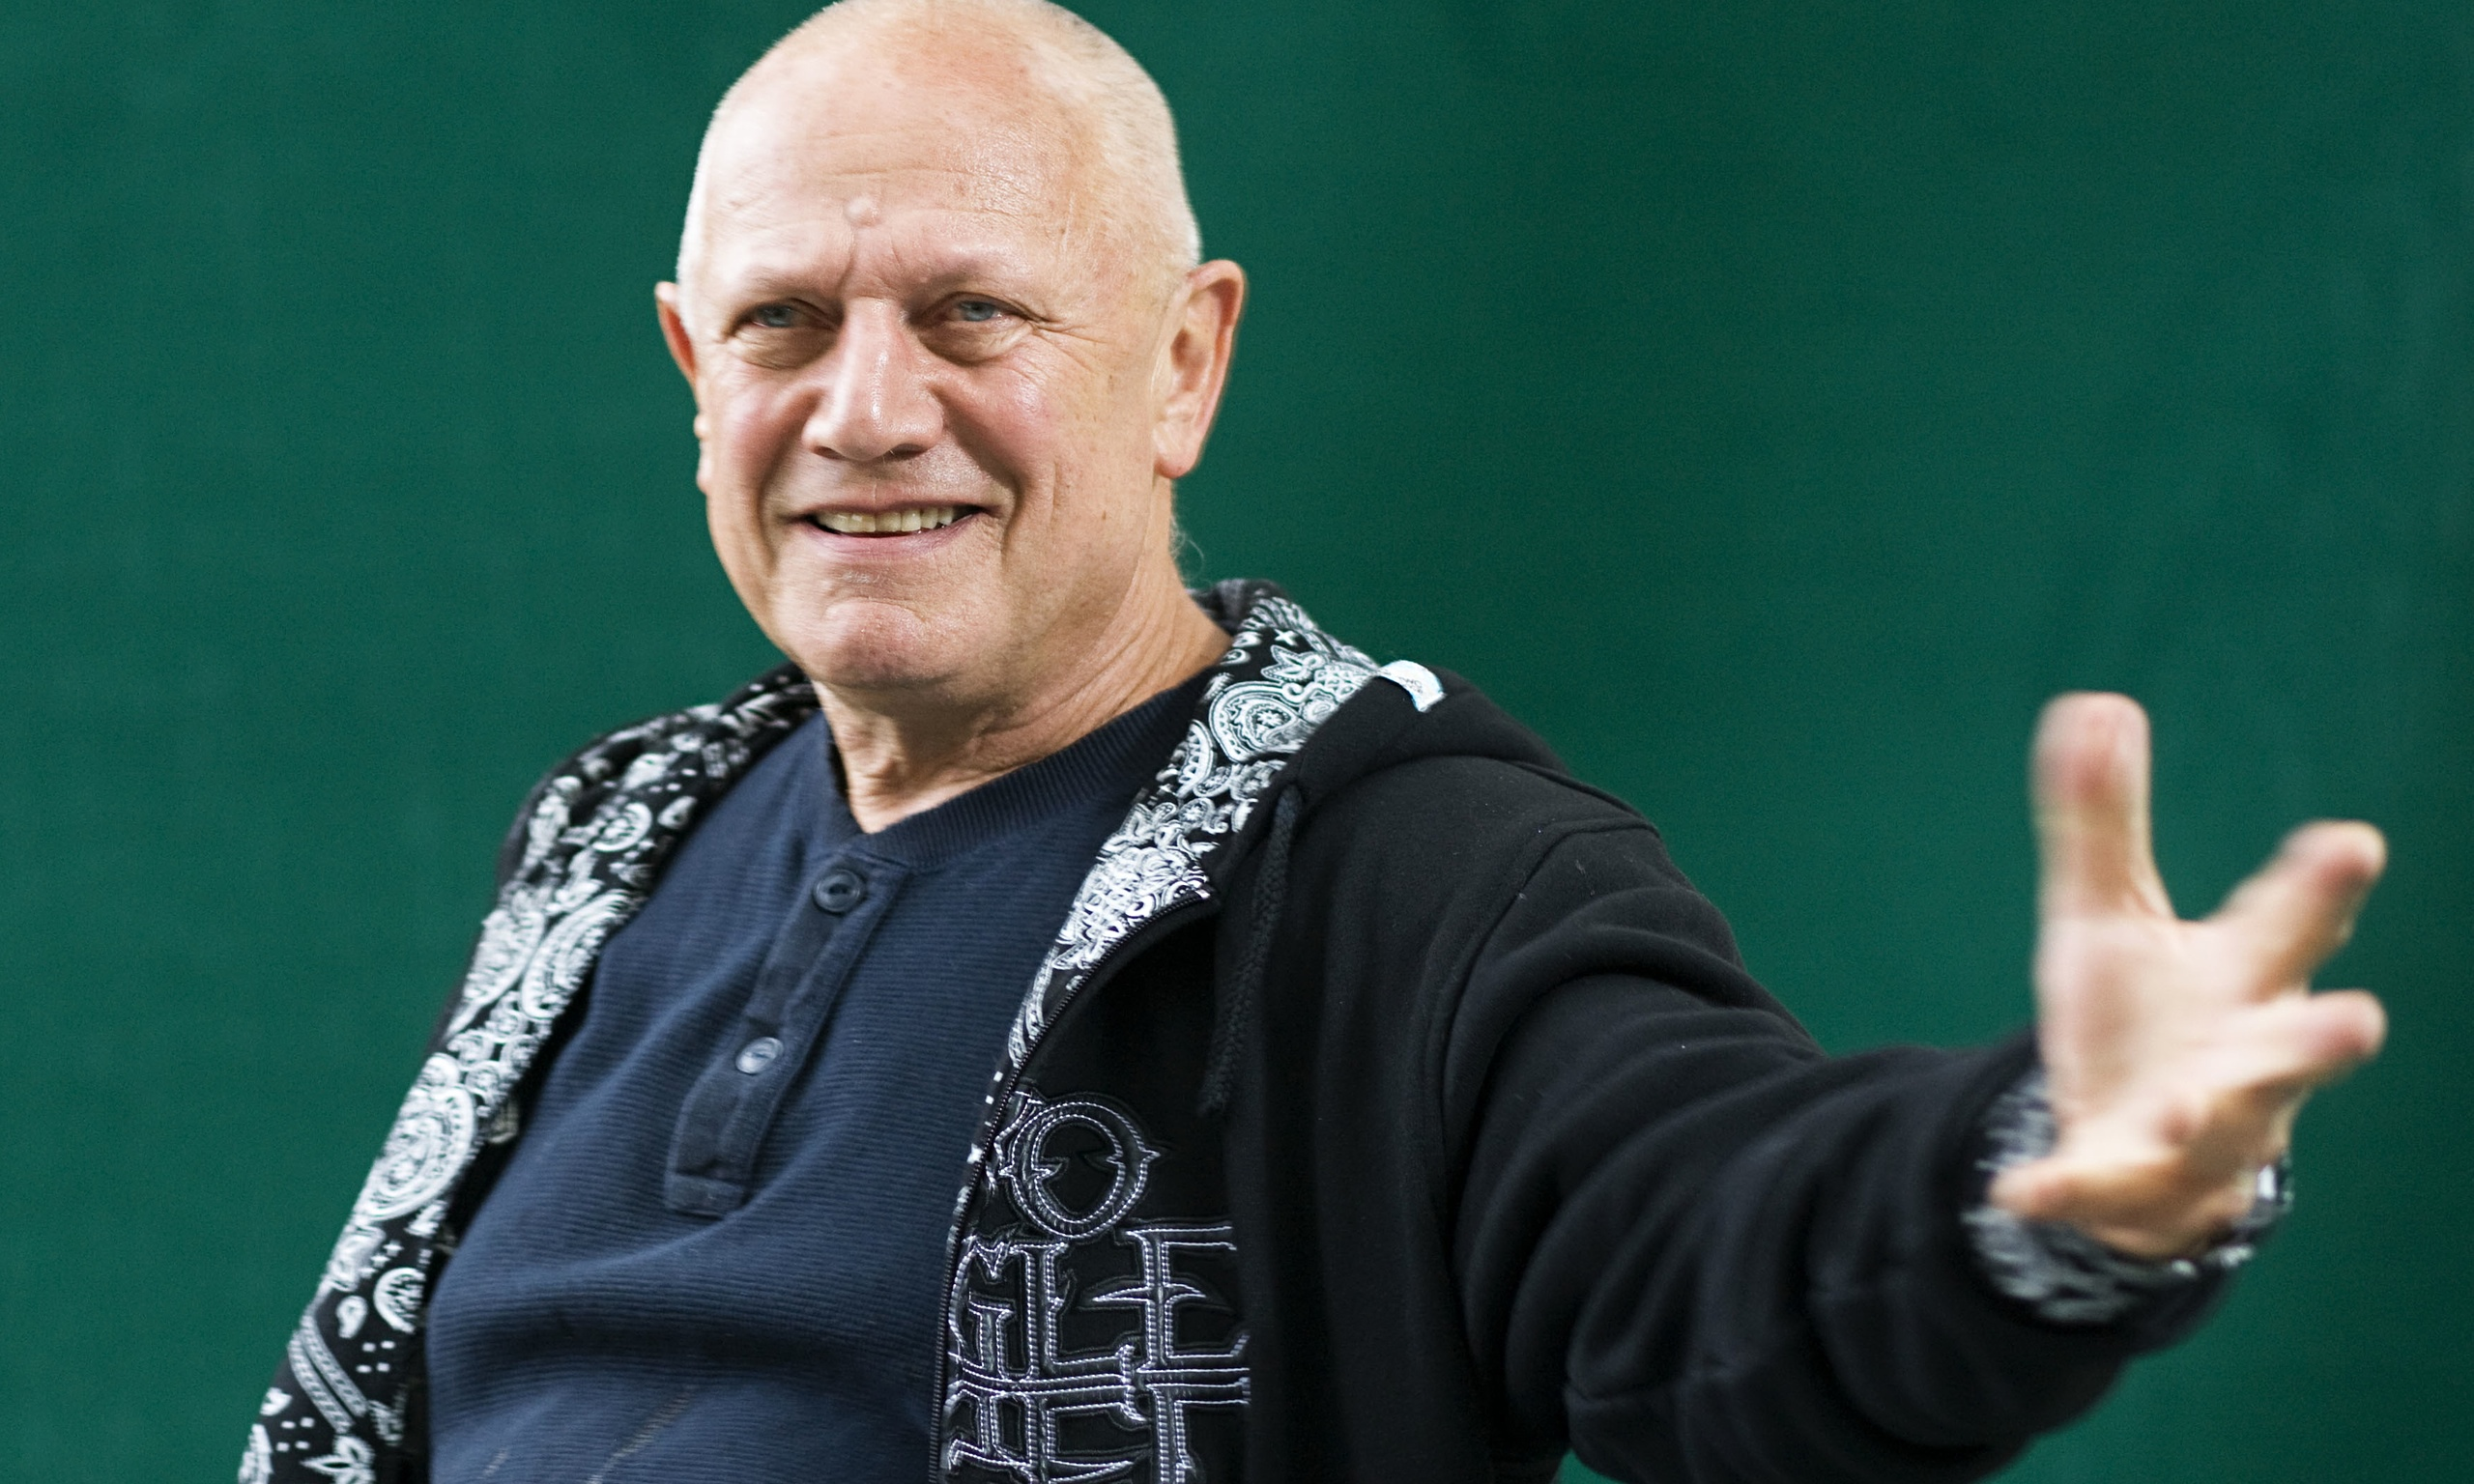 Steven Berkoff makes self-publishing debut | Books | The ...